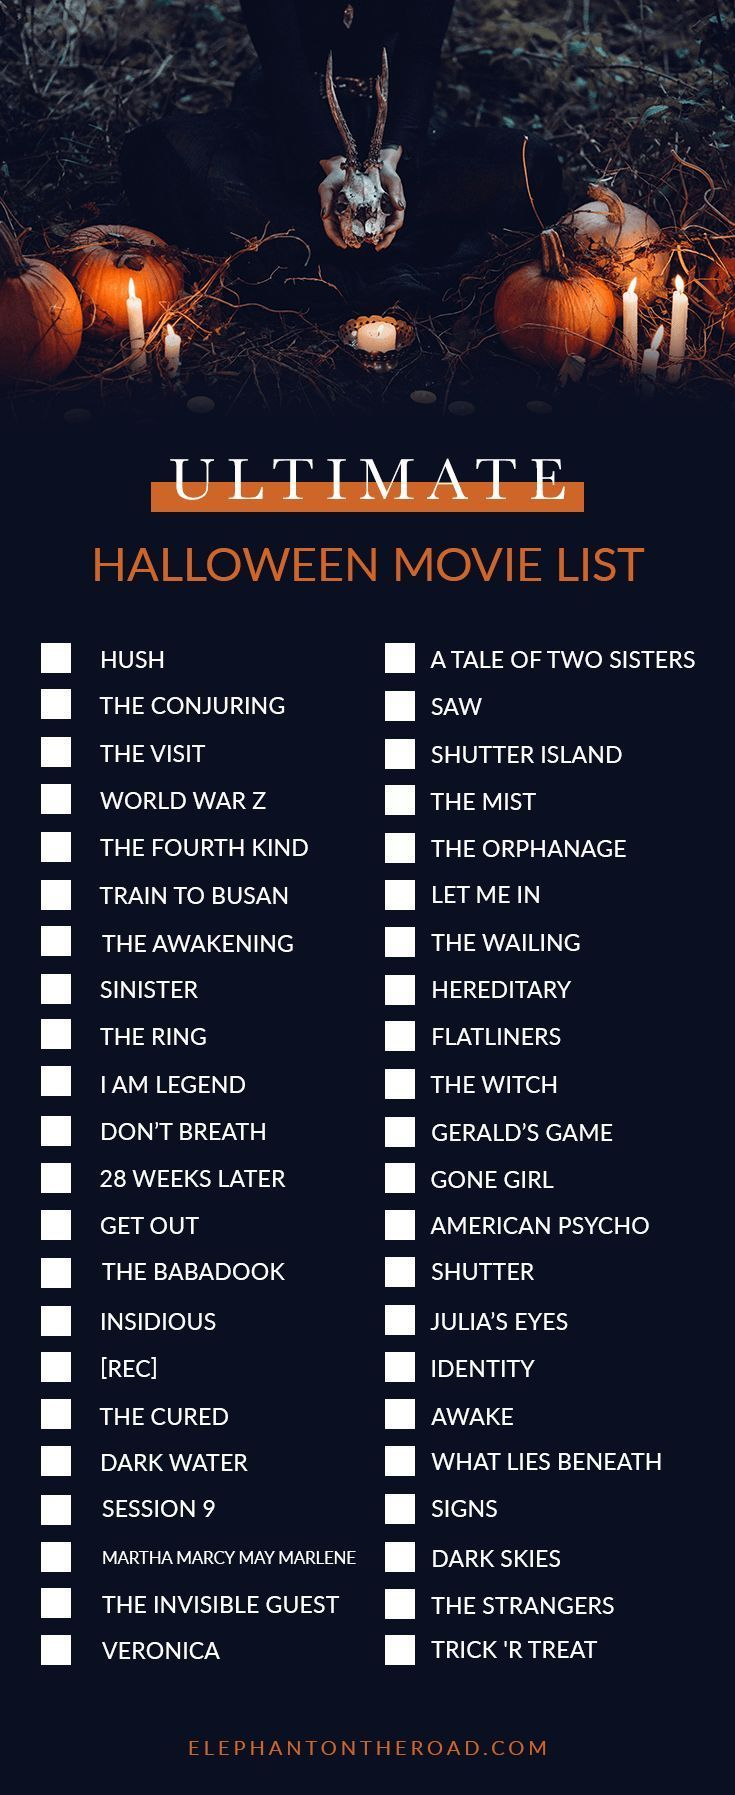 Die perfekte Halloween-Nacht in der ultimativen Halloween-Filmliste. Horrorfilme…